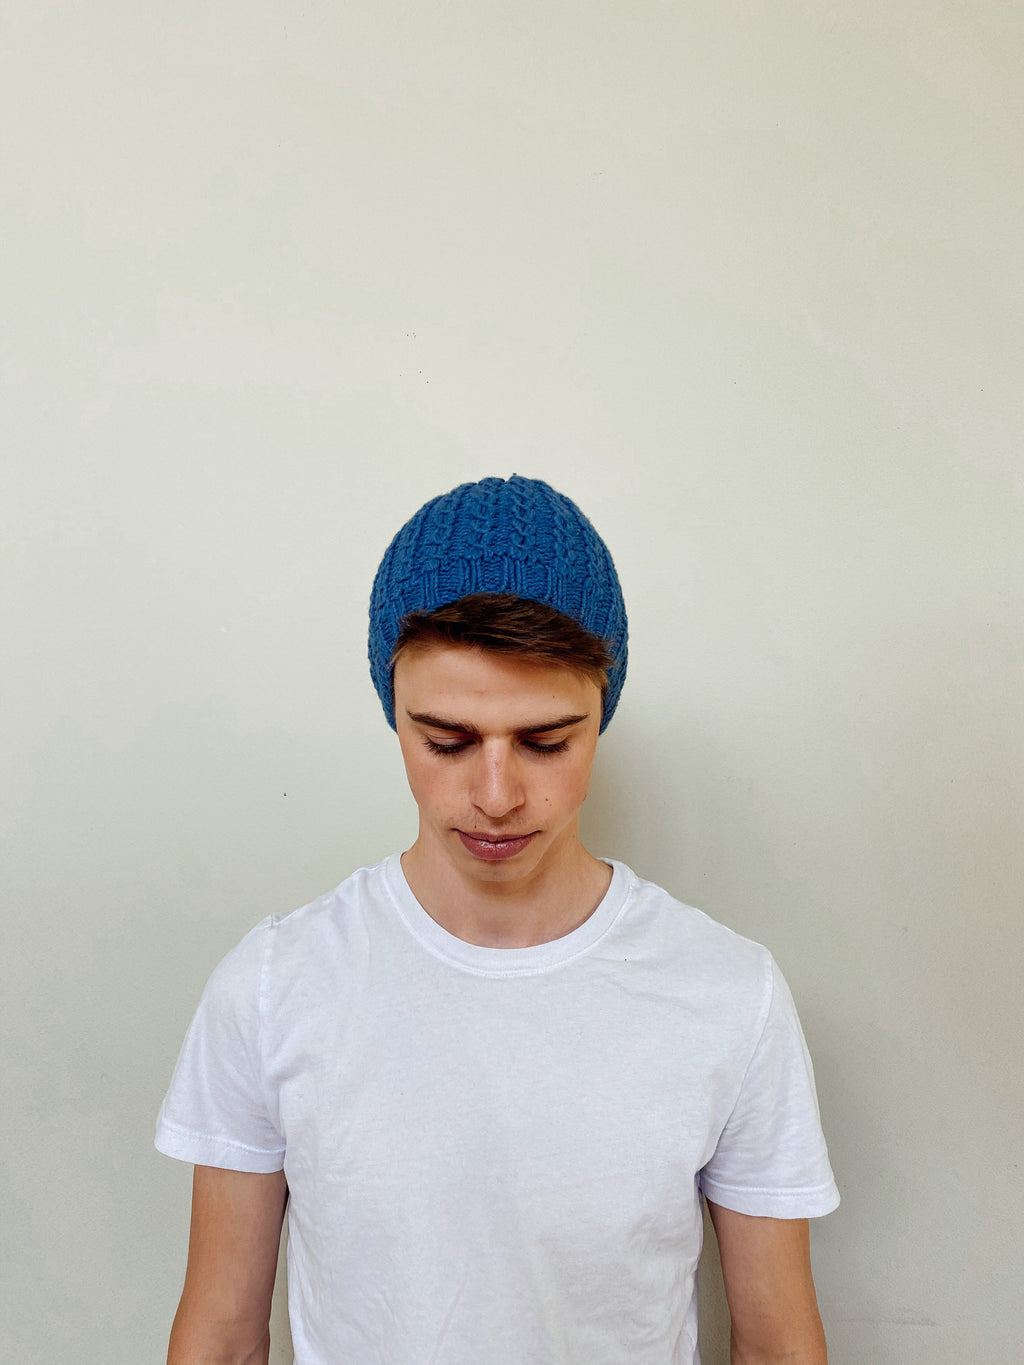 Eyelet Beanie - Yak Wool Hat -  The Yak Wool Company